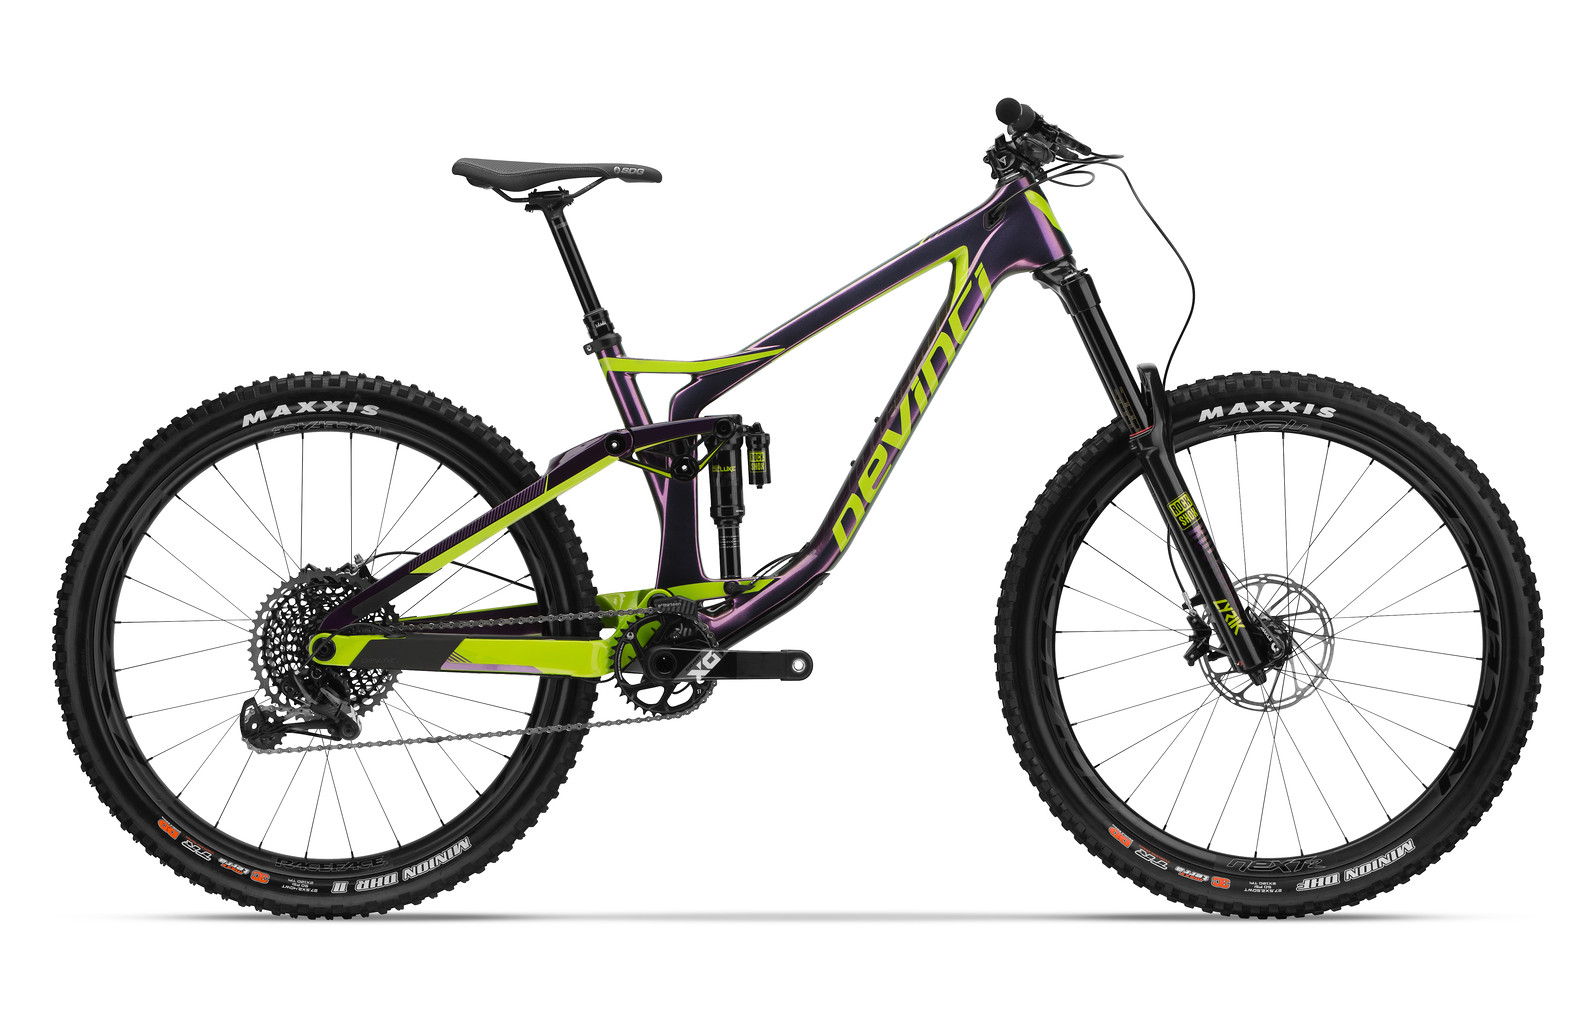 2018 Devinci Spartan Carbon X01 Eagle  2018 Devinci Spartan Carbon X01 Eagle in Purple and Green